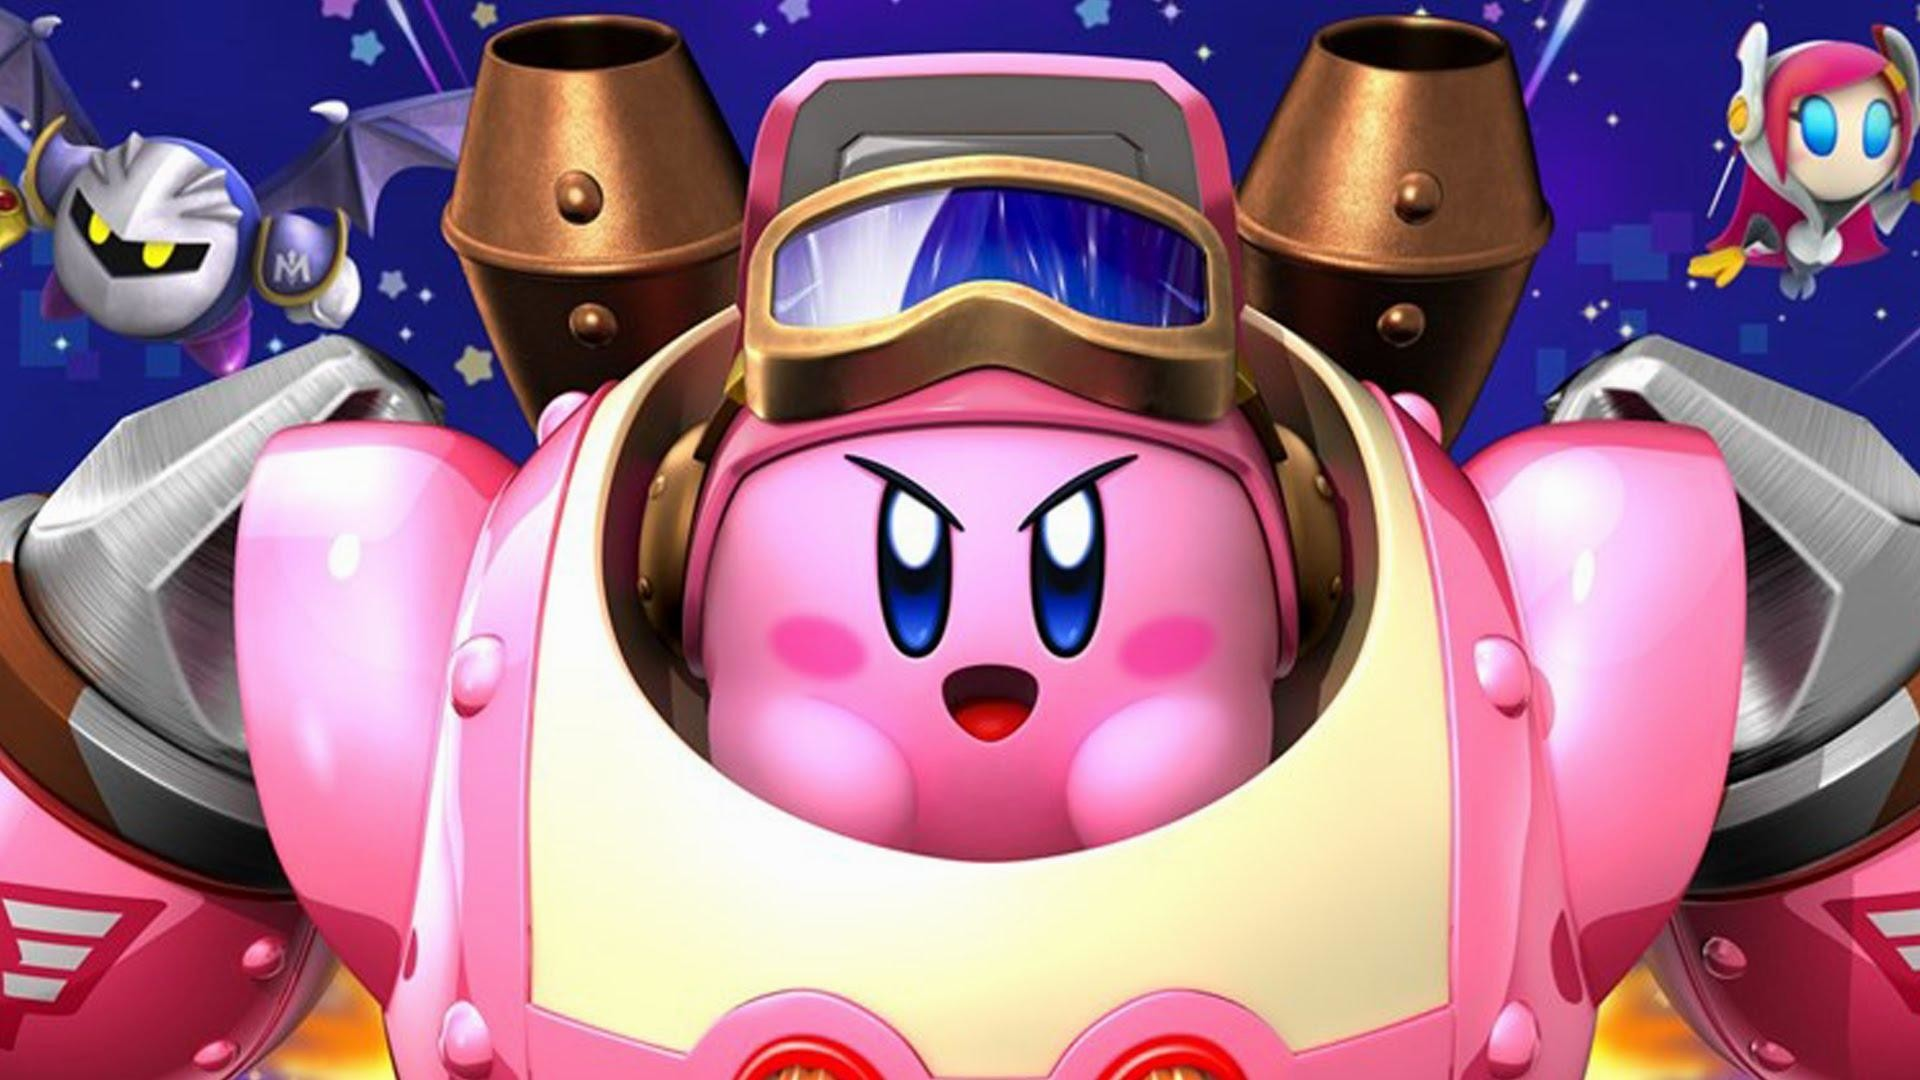 Images-Kirby-Wallpaper-HD